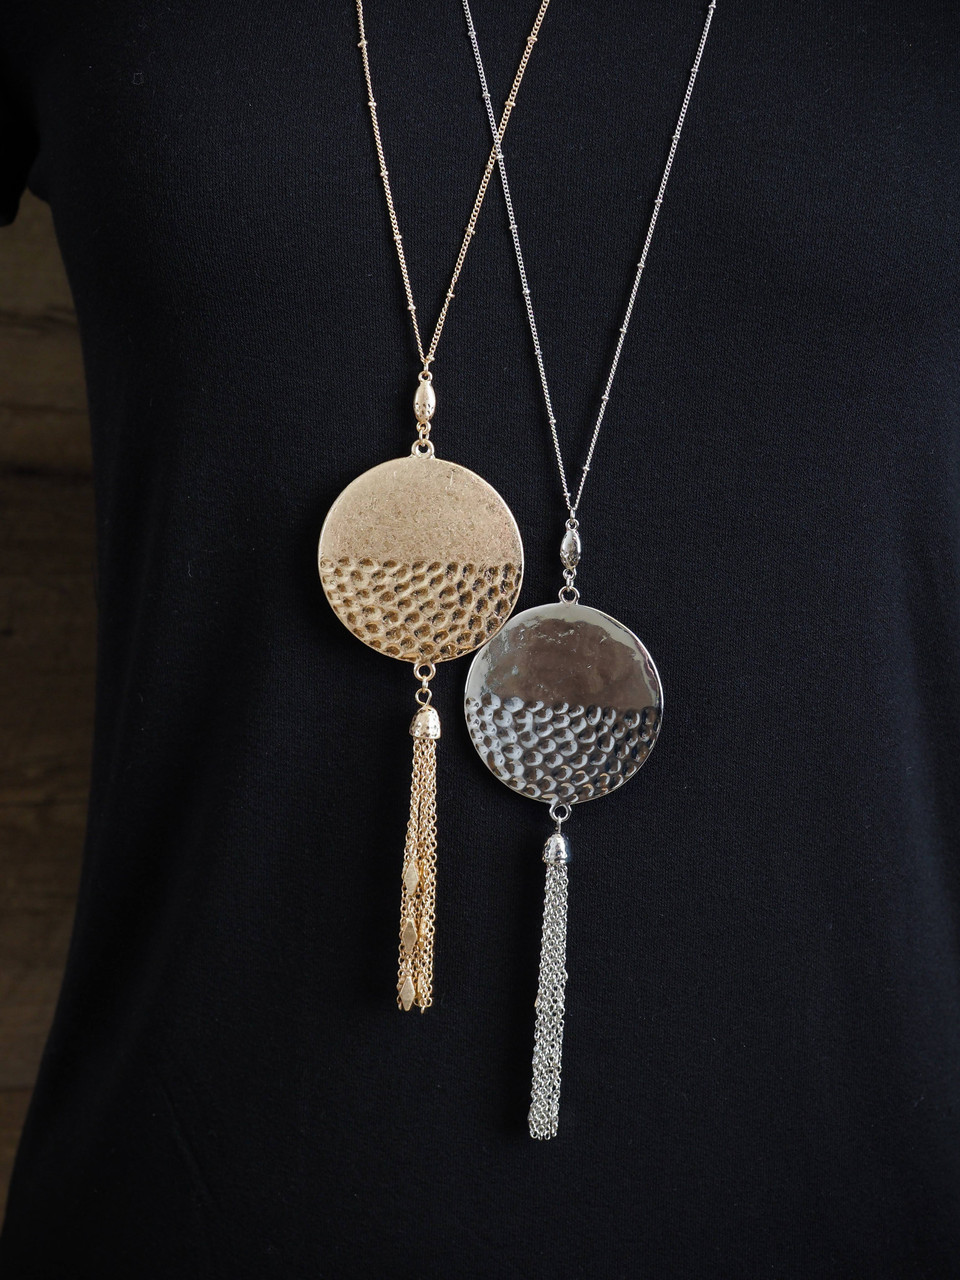 Long Necklace With Hammered Pendant